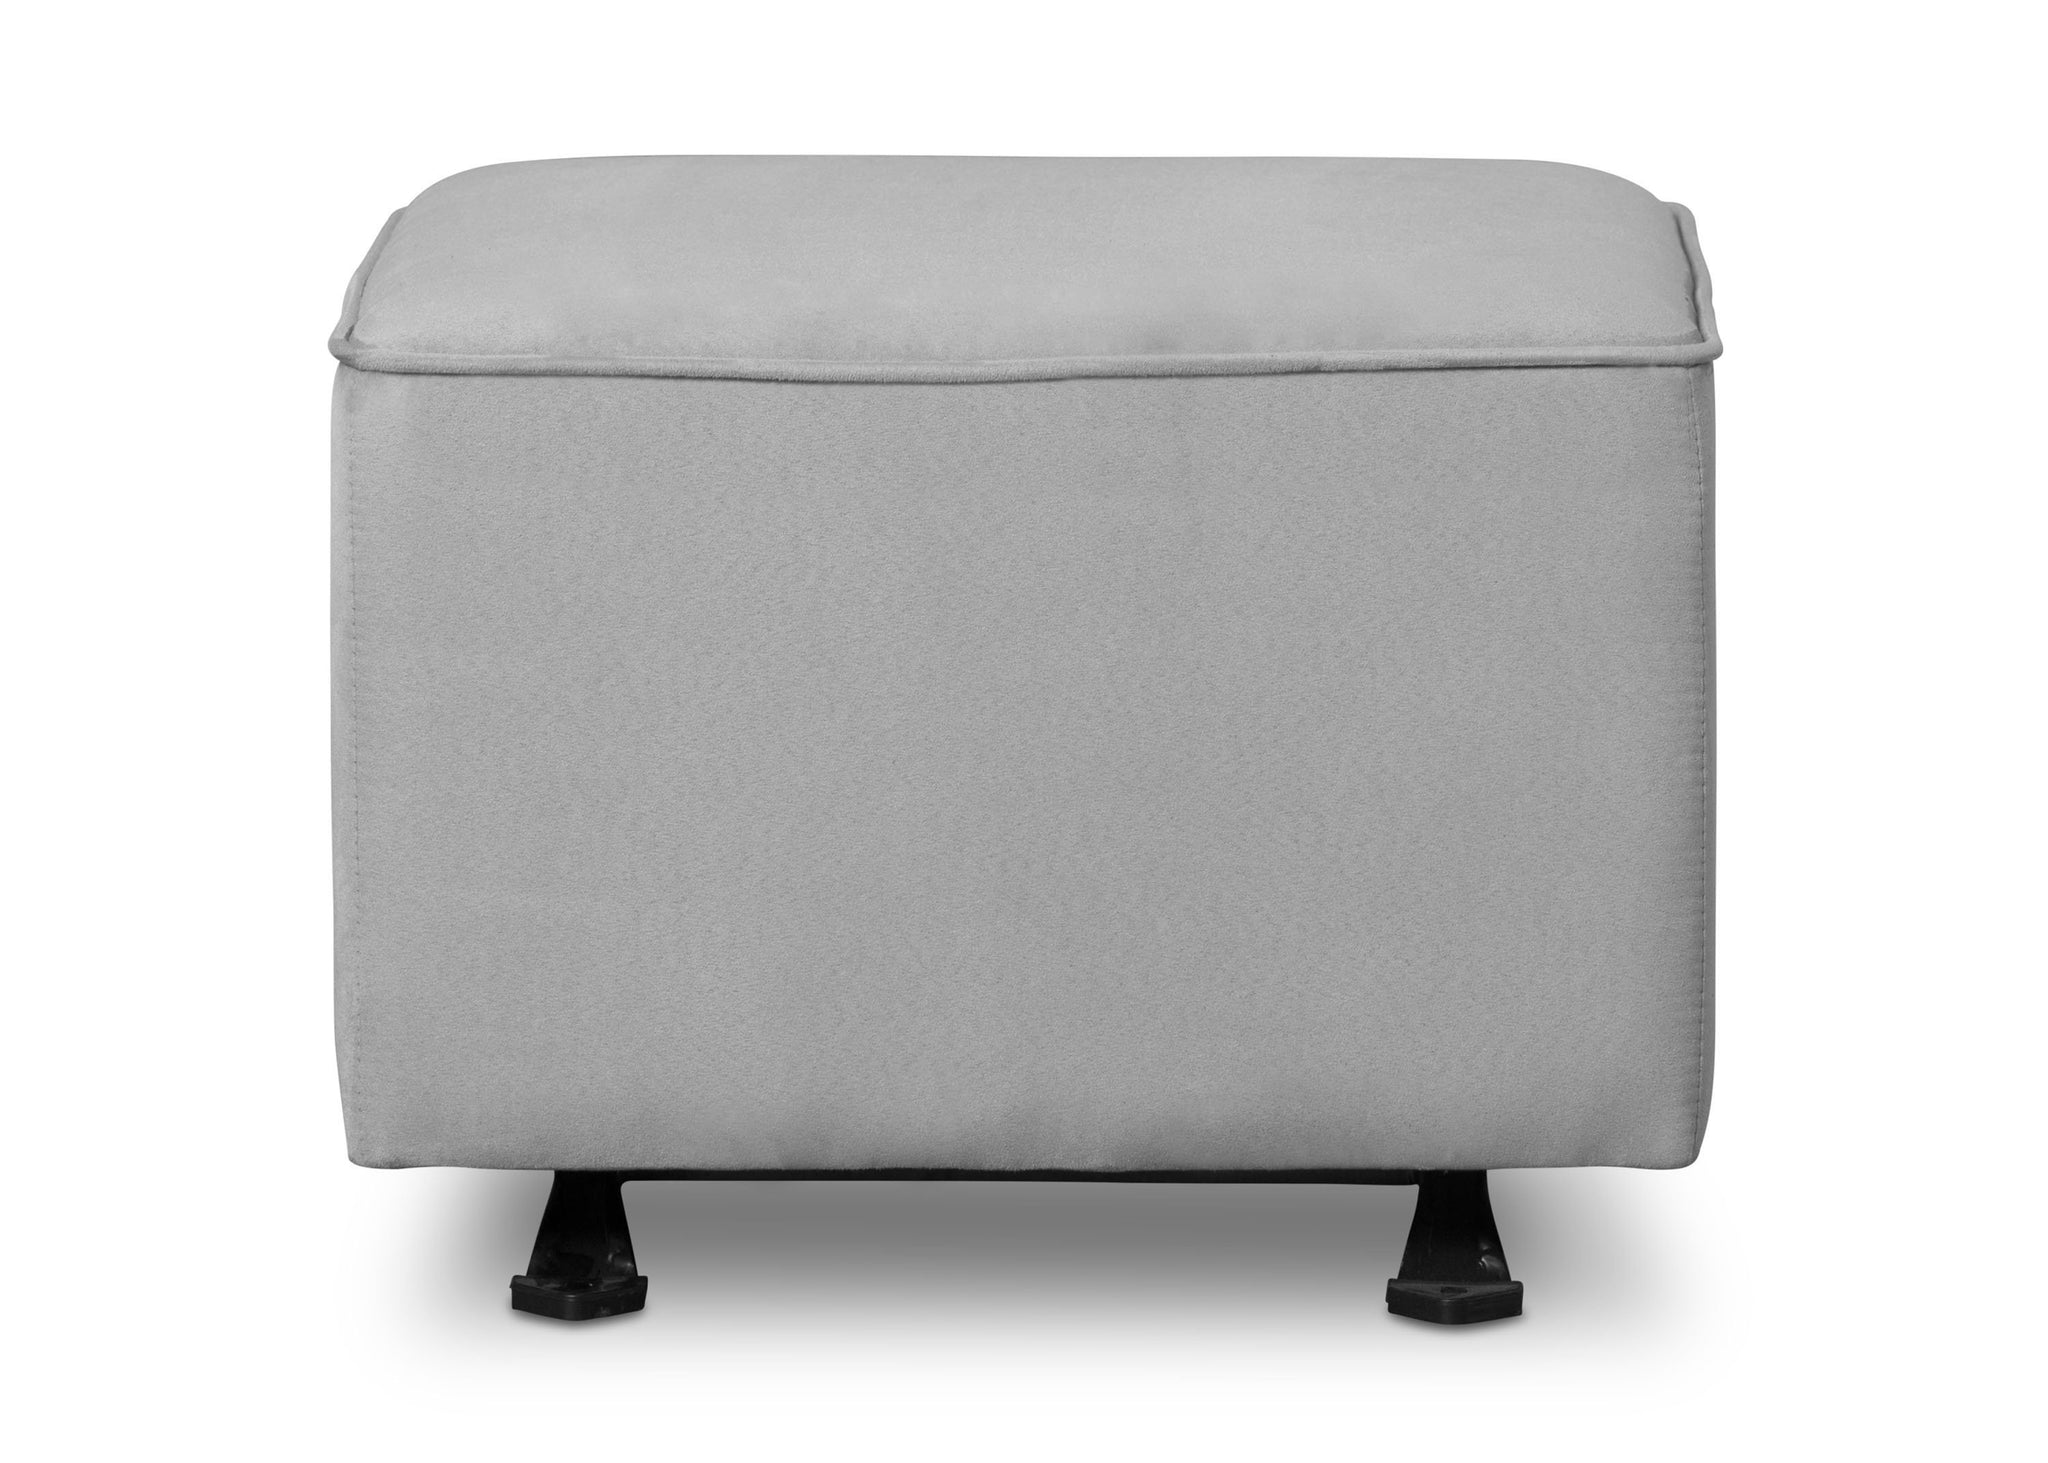 Delta Children Dove Grey (034) Nursery Gliding Ottoman (501220), Front View, a2a